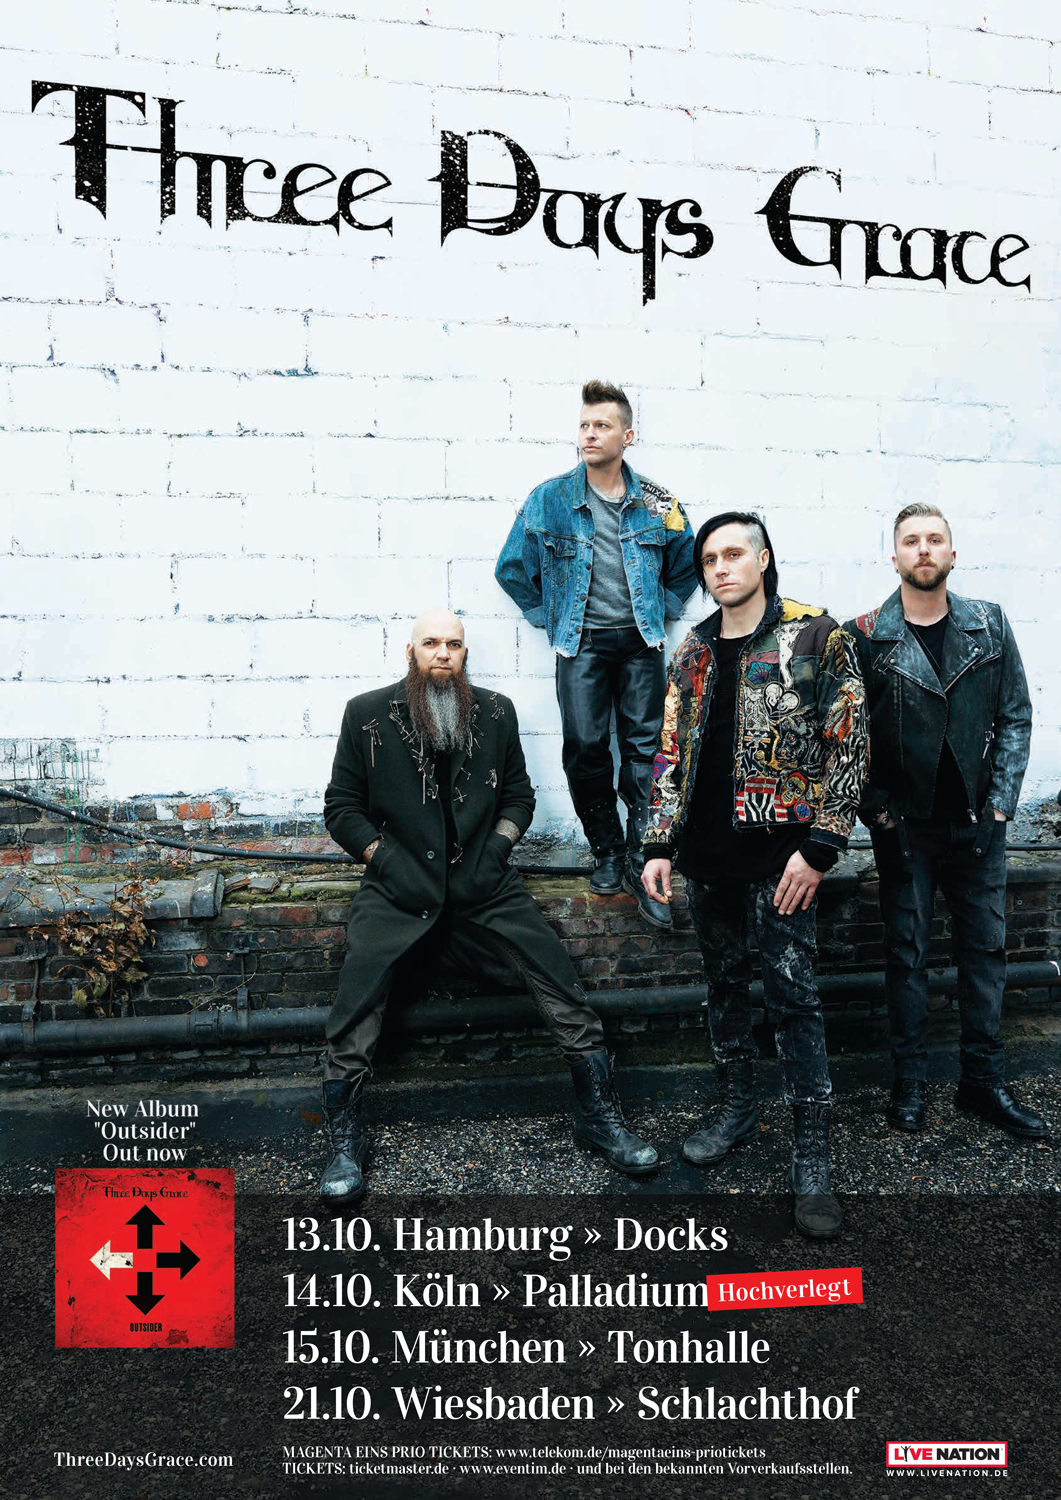 https://threedaysgrace.com/2018/07/06/venue-upgrade-for-cologne-on-october-14/